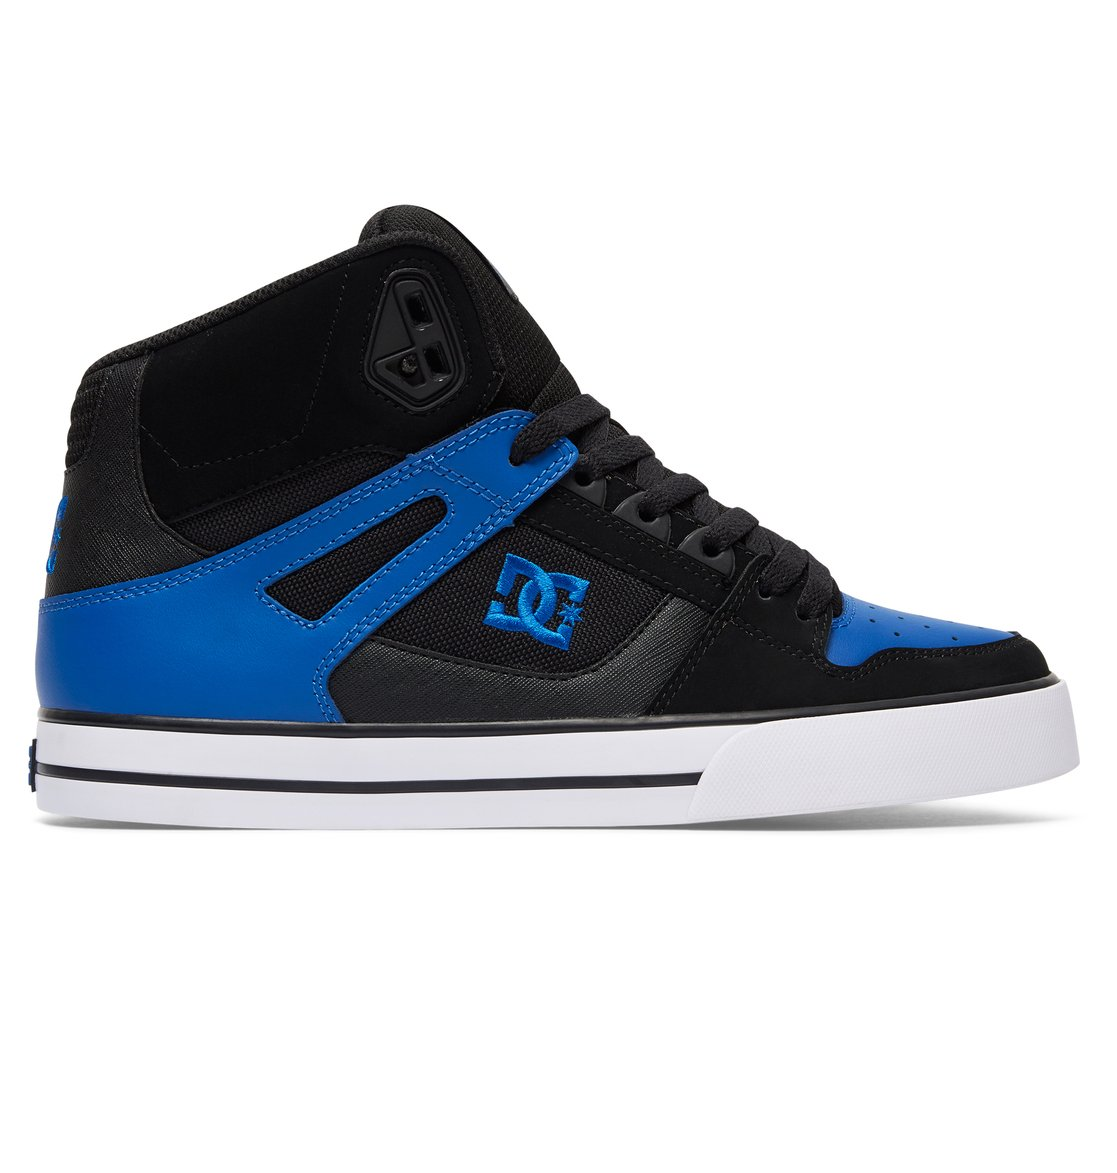 Spartan High Dc Shoes